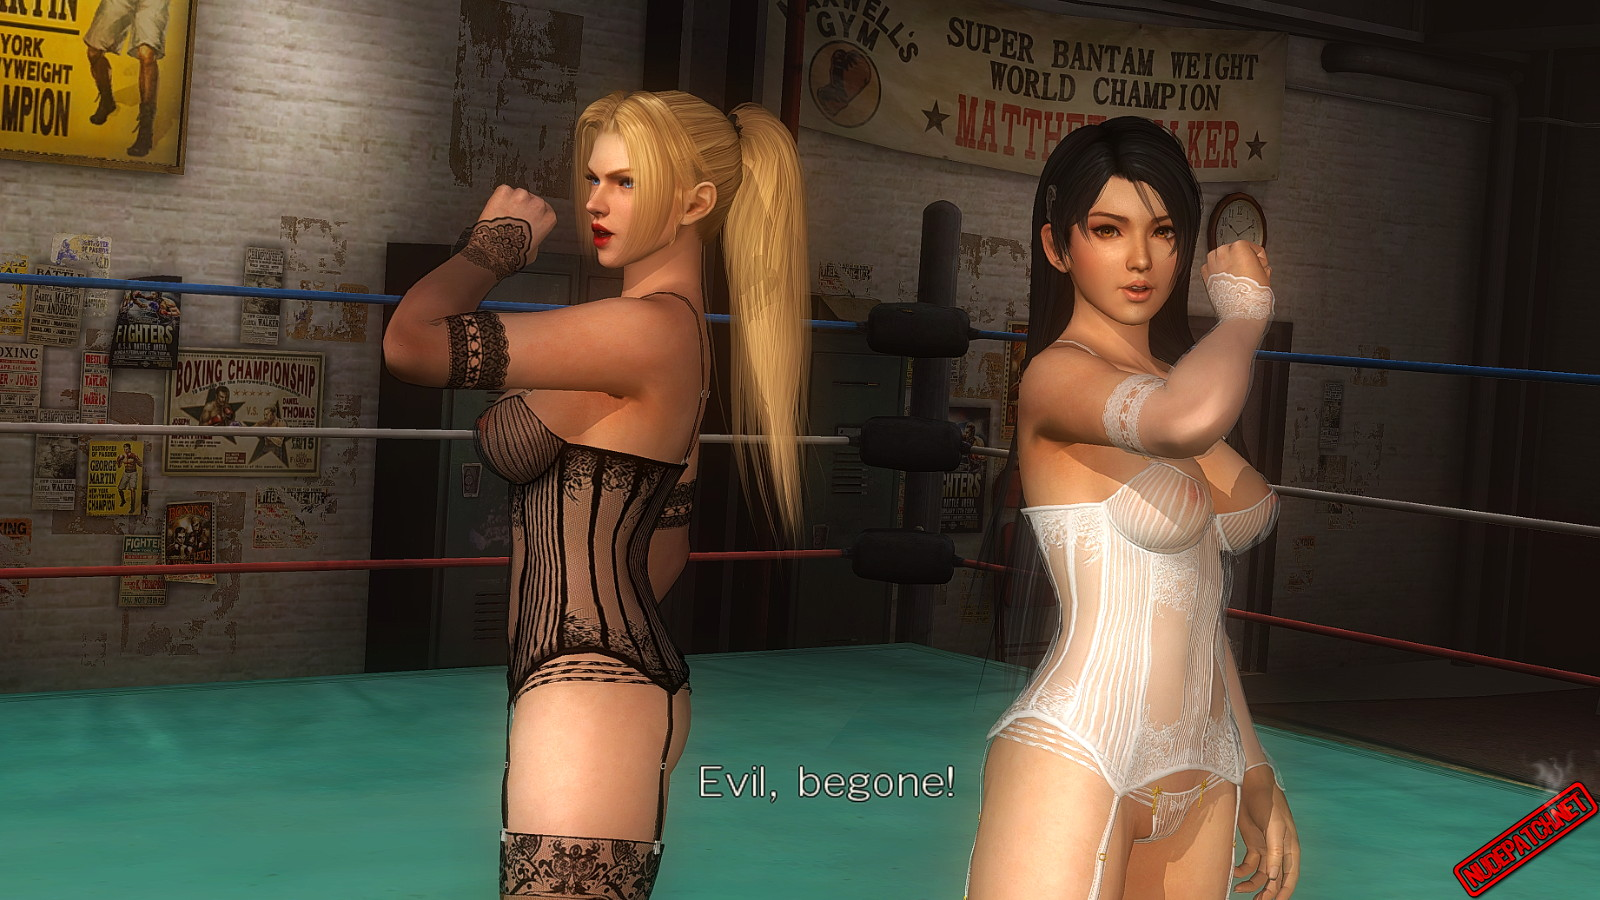 Round 5 patch dead alive last or nude Dead or